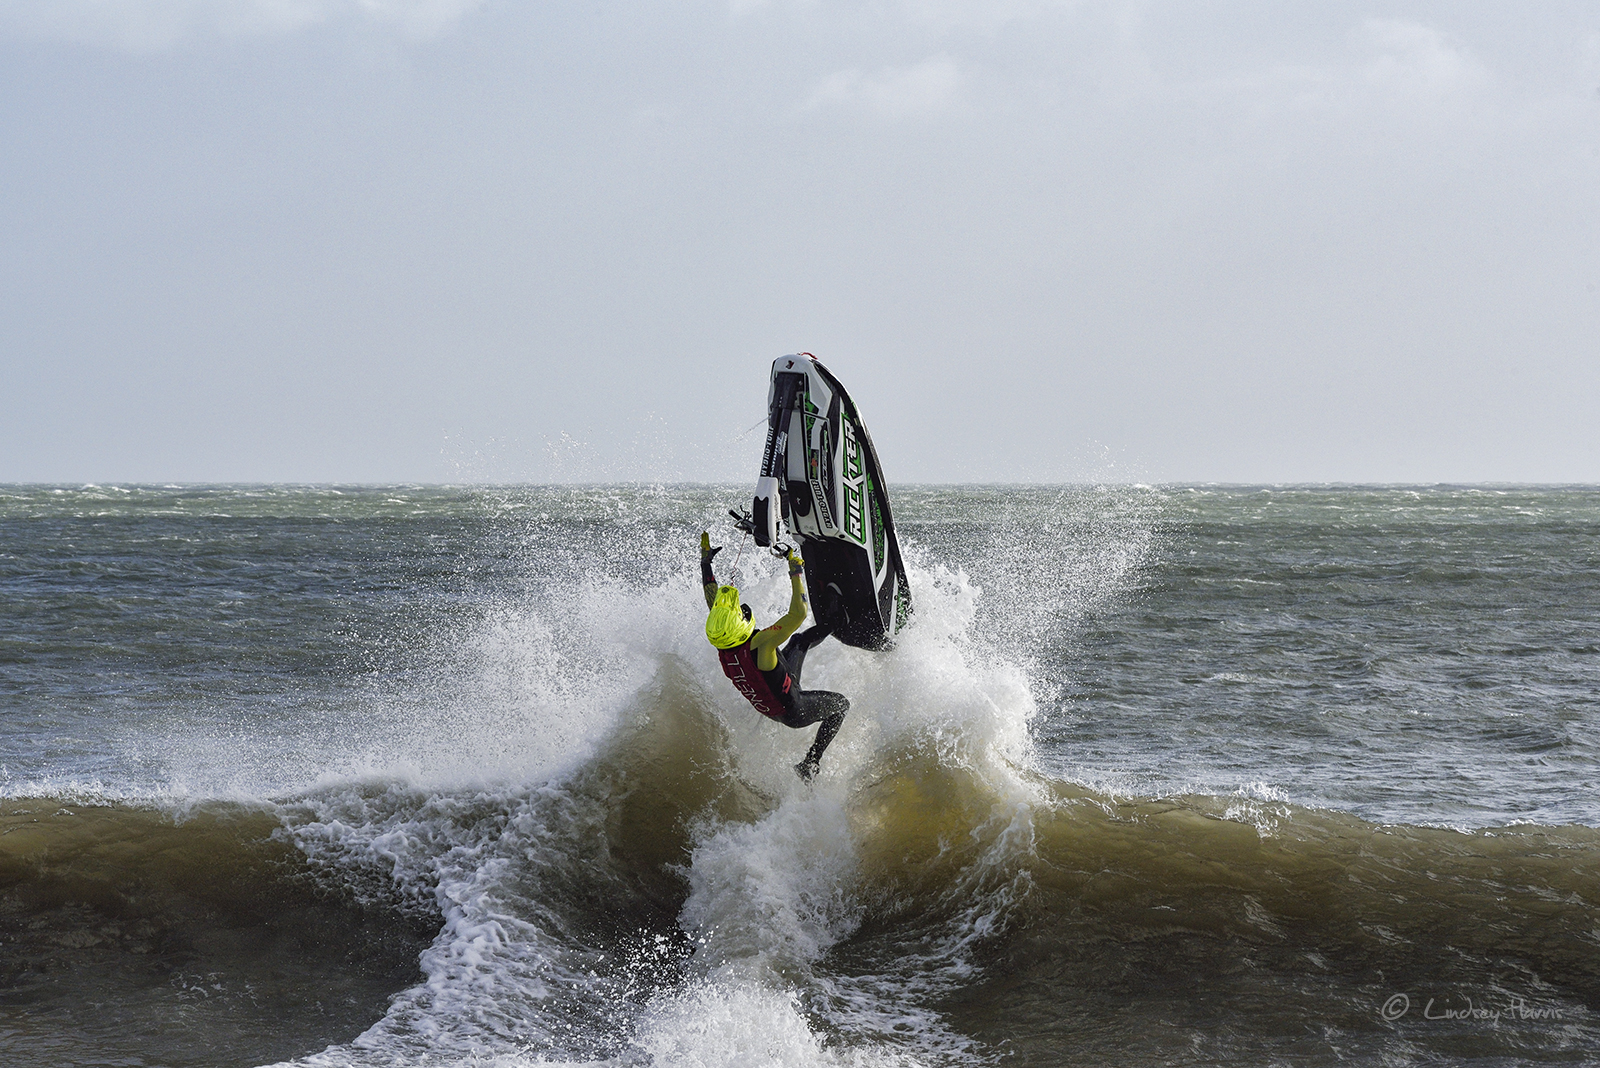 Jet Ski at Swanage during Storm Brian, October 21st 2017.